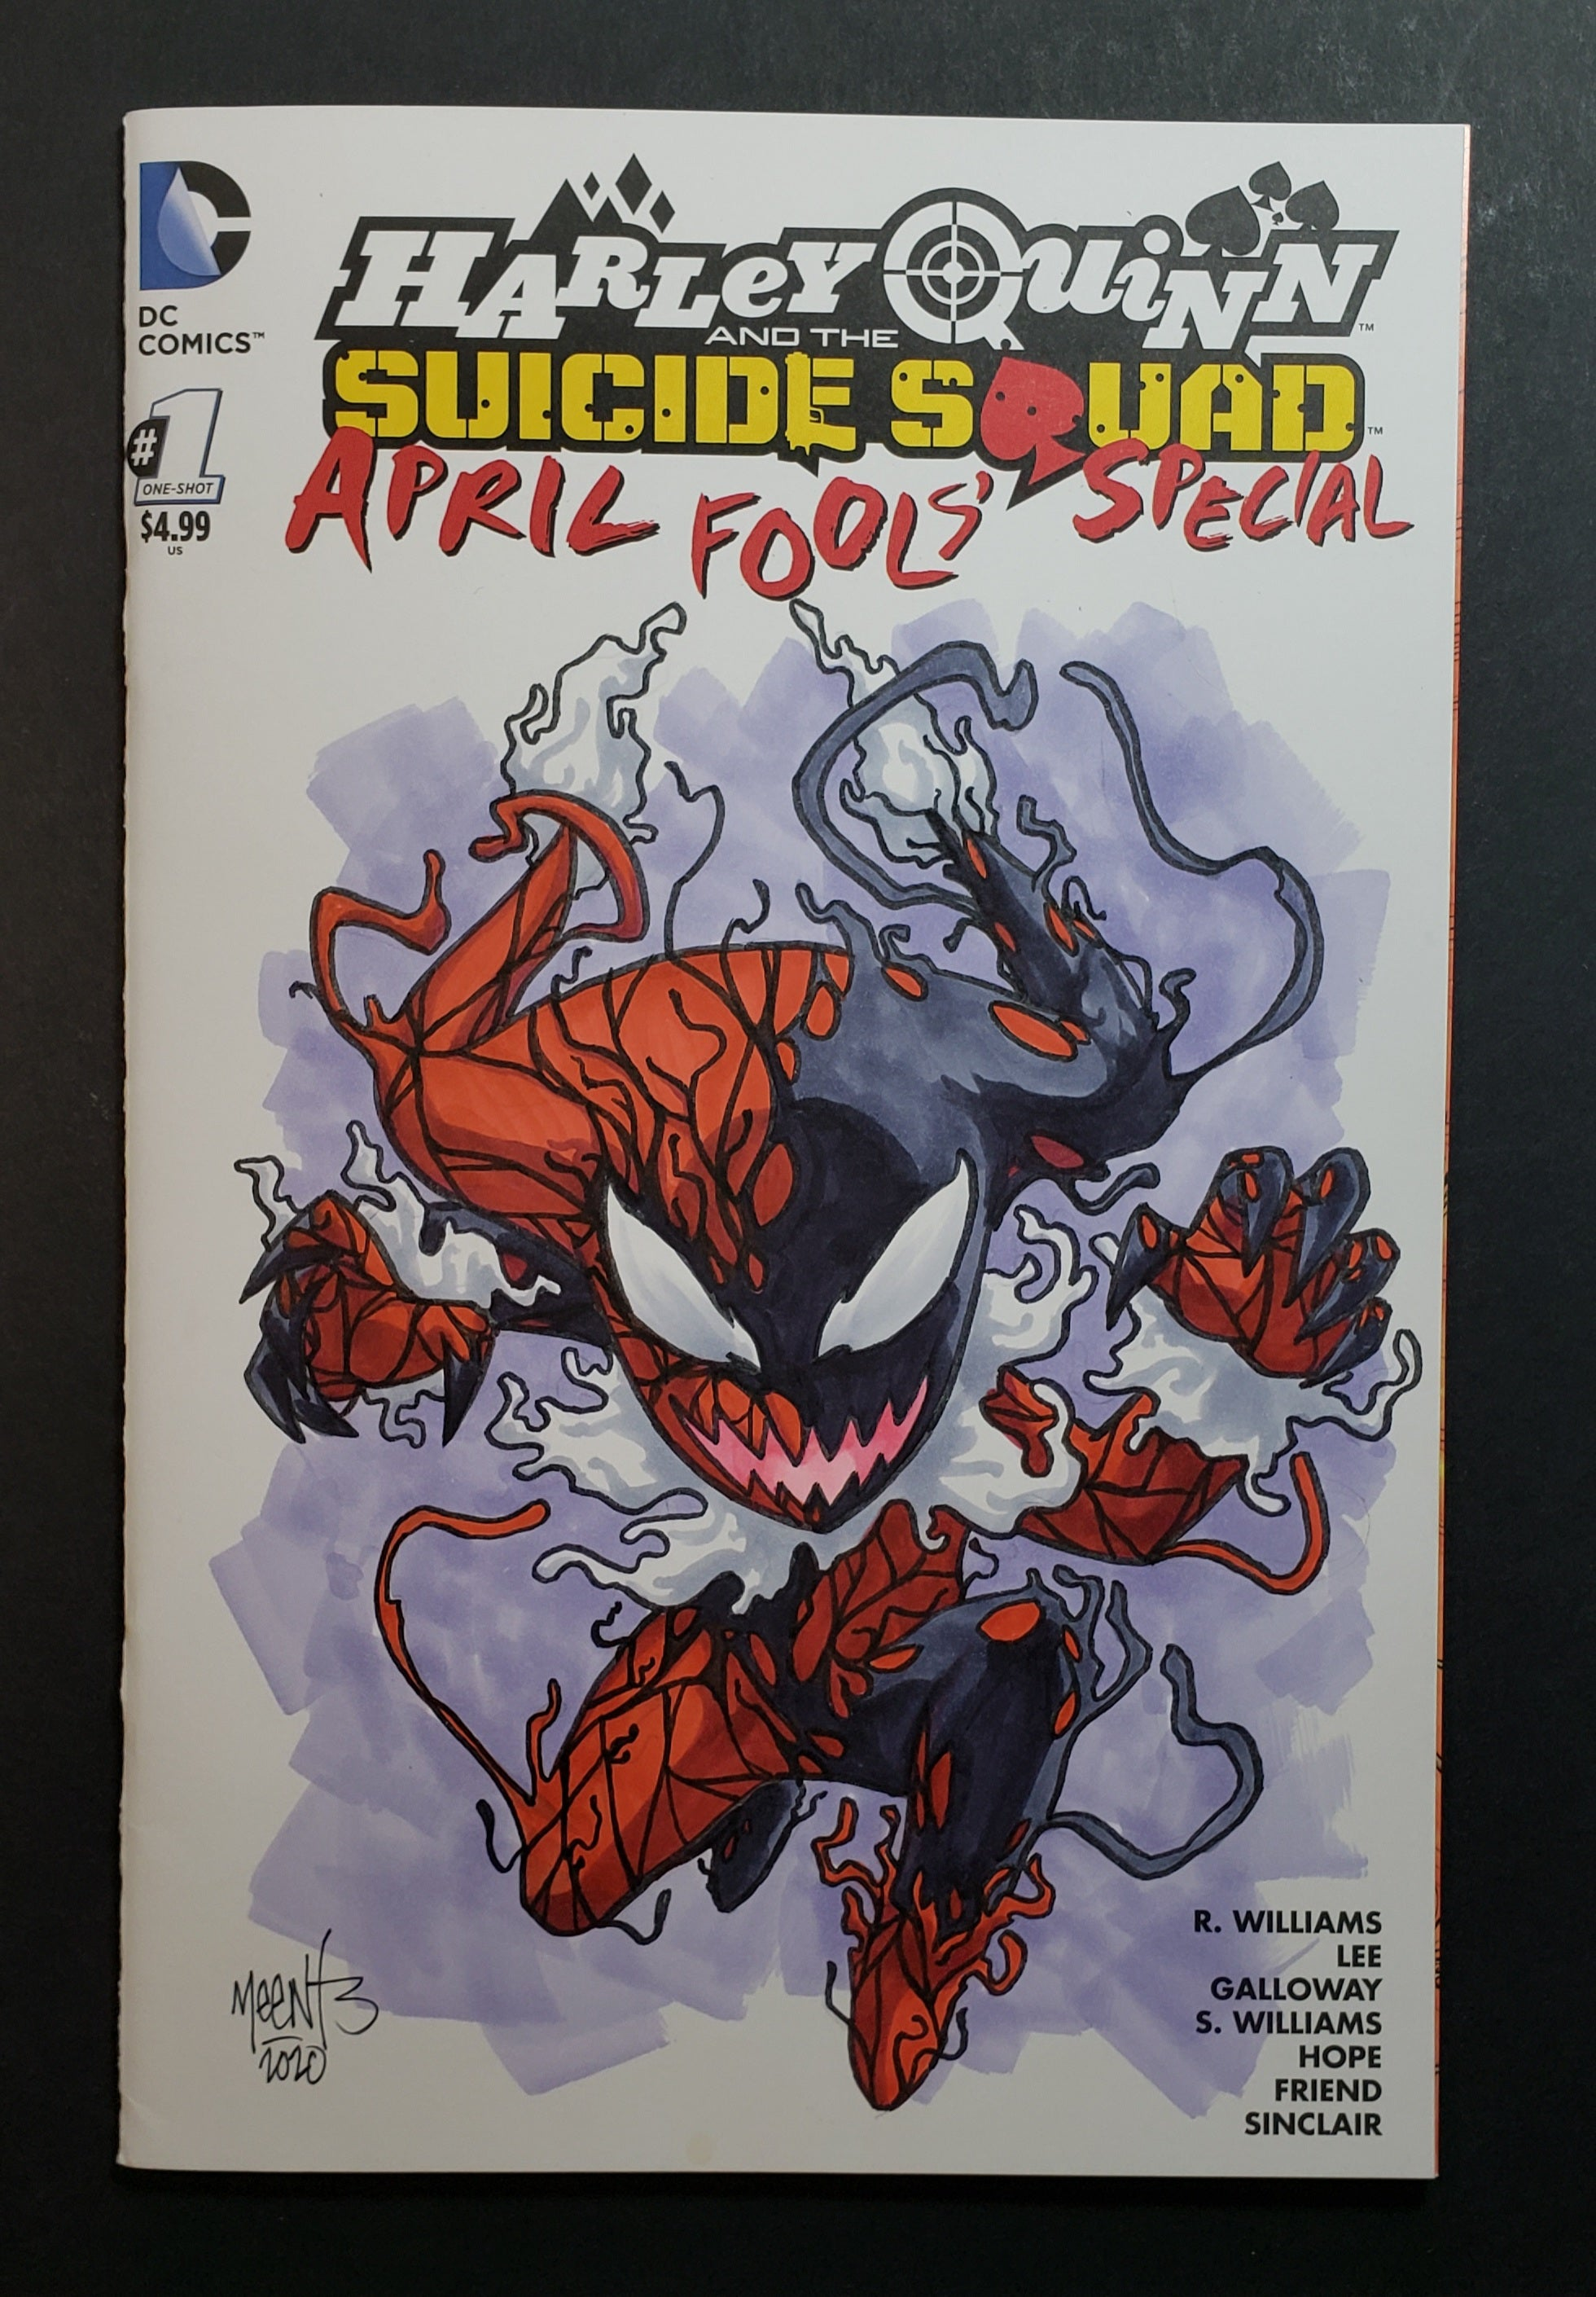 Carnage Harley Quinn Comic Sketch Cover